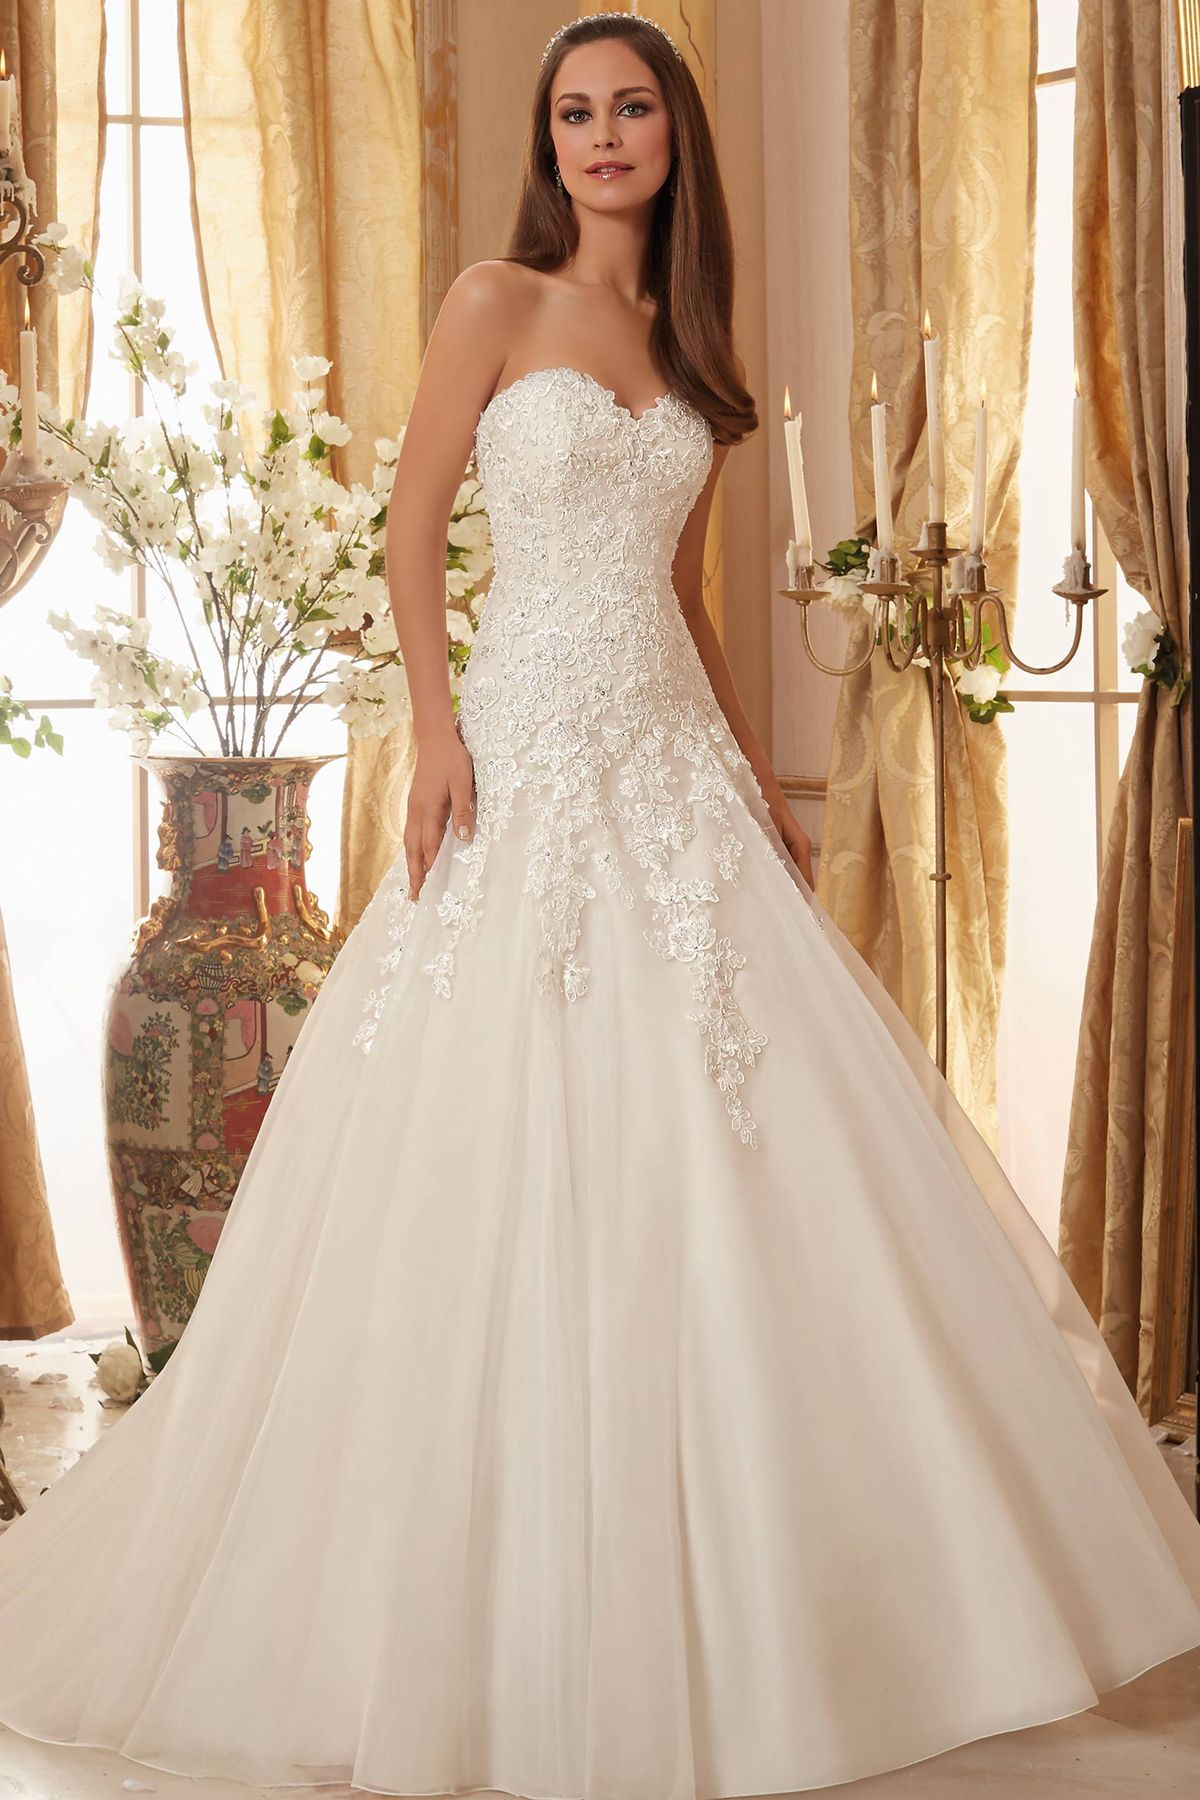 Lace dress styles for wedding  Pin by AudoraBelle Bridal on Blu by Madeline Gardner  Pinterest